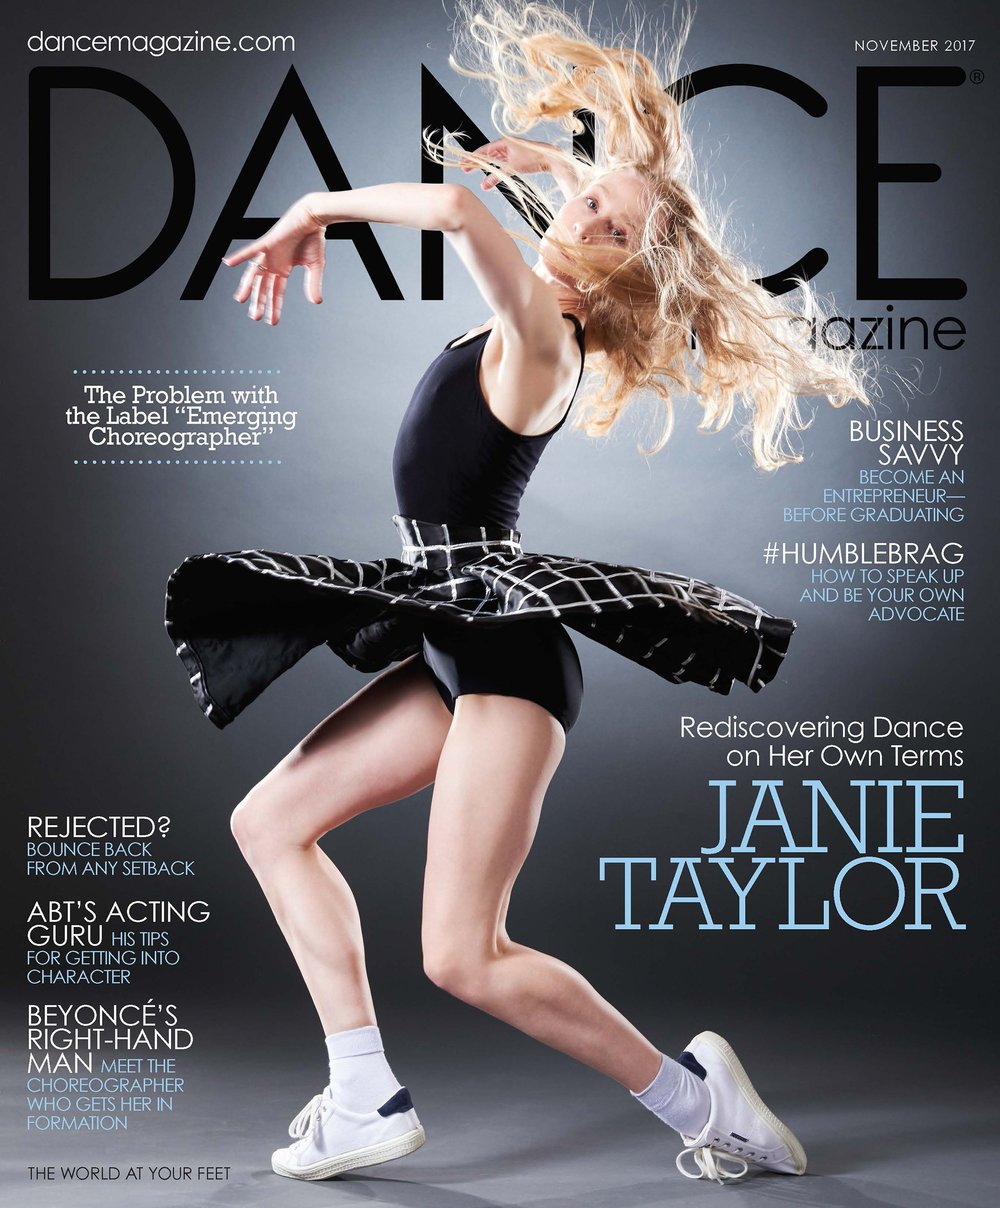 November 2017 - Amanda was interviewed and featured in Dance Magazine's article